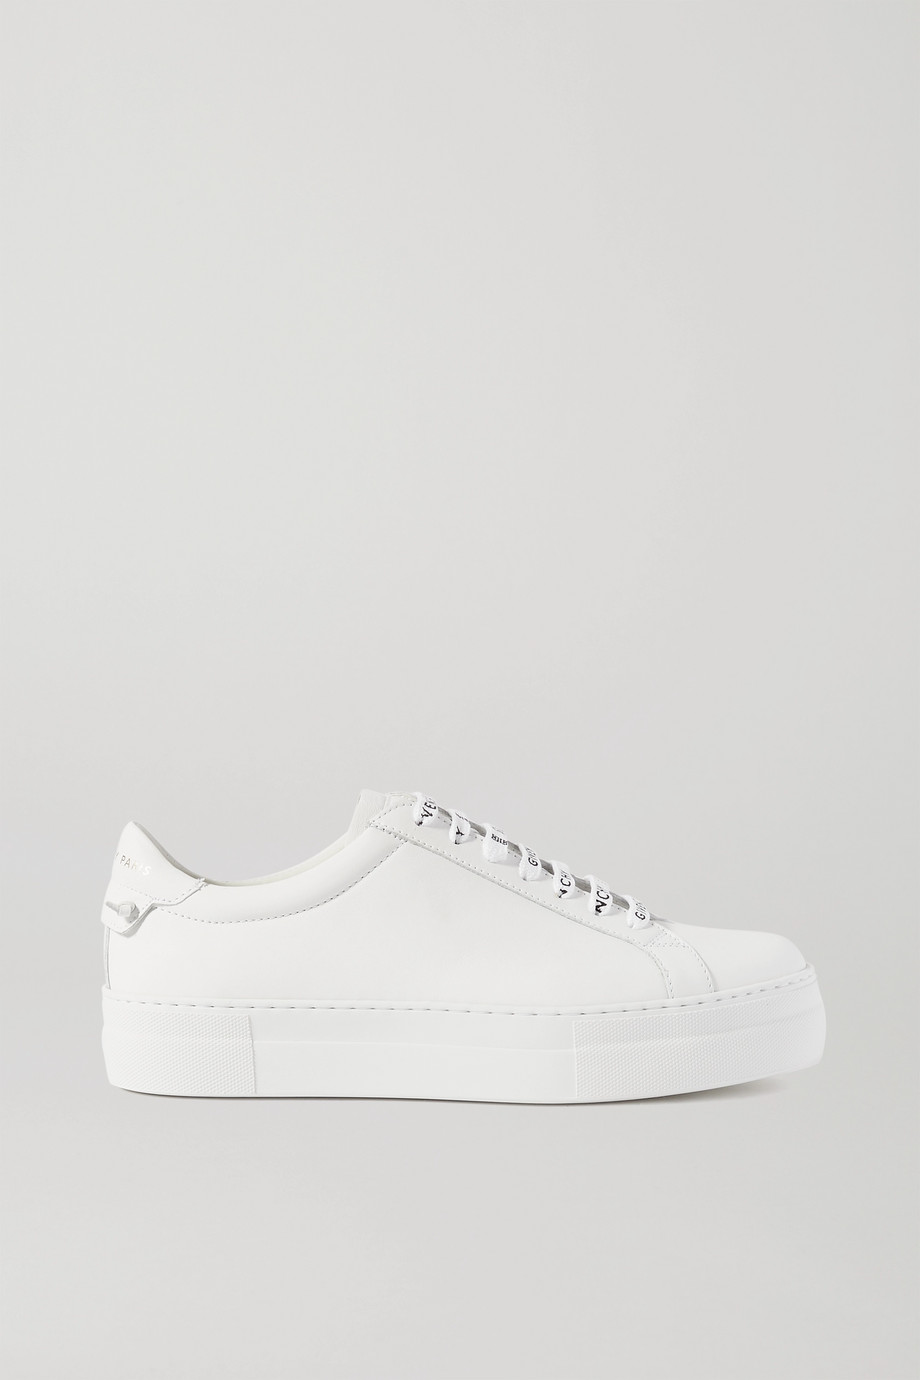 Givenchy Urban Street leather platform sneakers